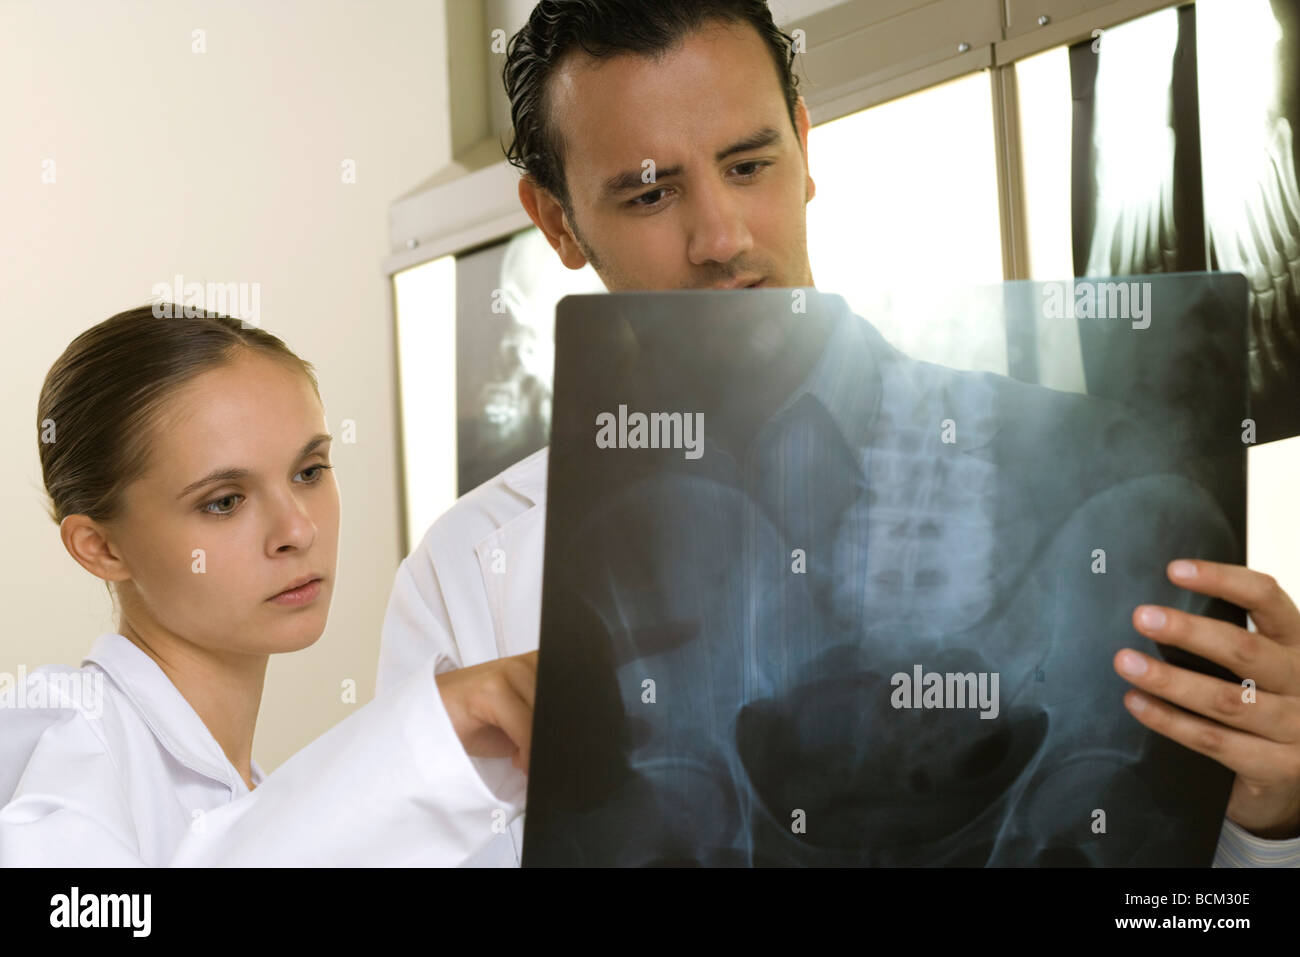 Medical colleagues studying x-ray together - Stock Image